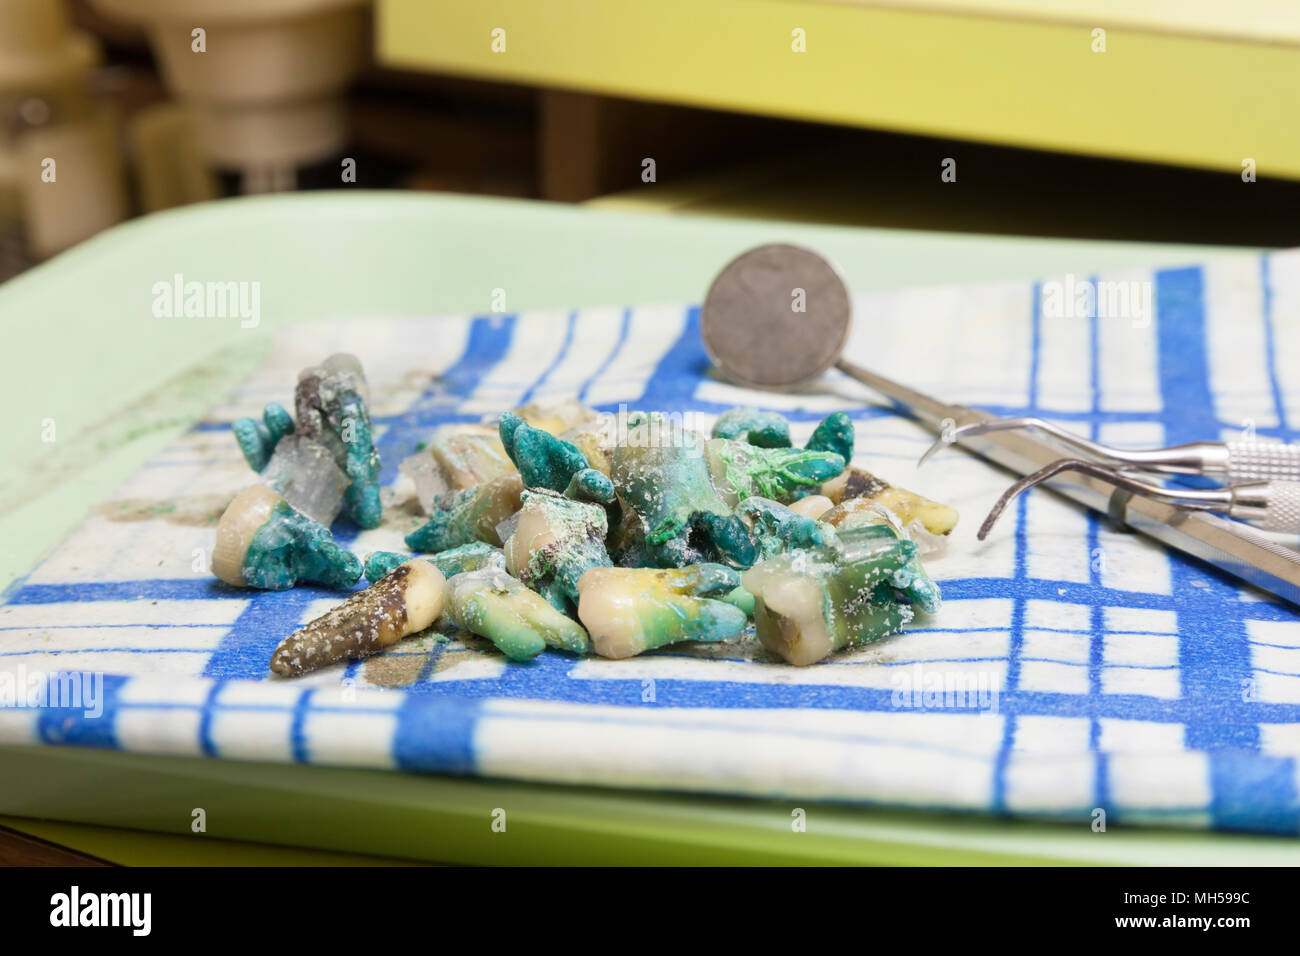 Rotten extracted teeth and dentistry tools displayed on a tray. - Stock Image